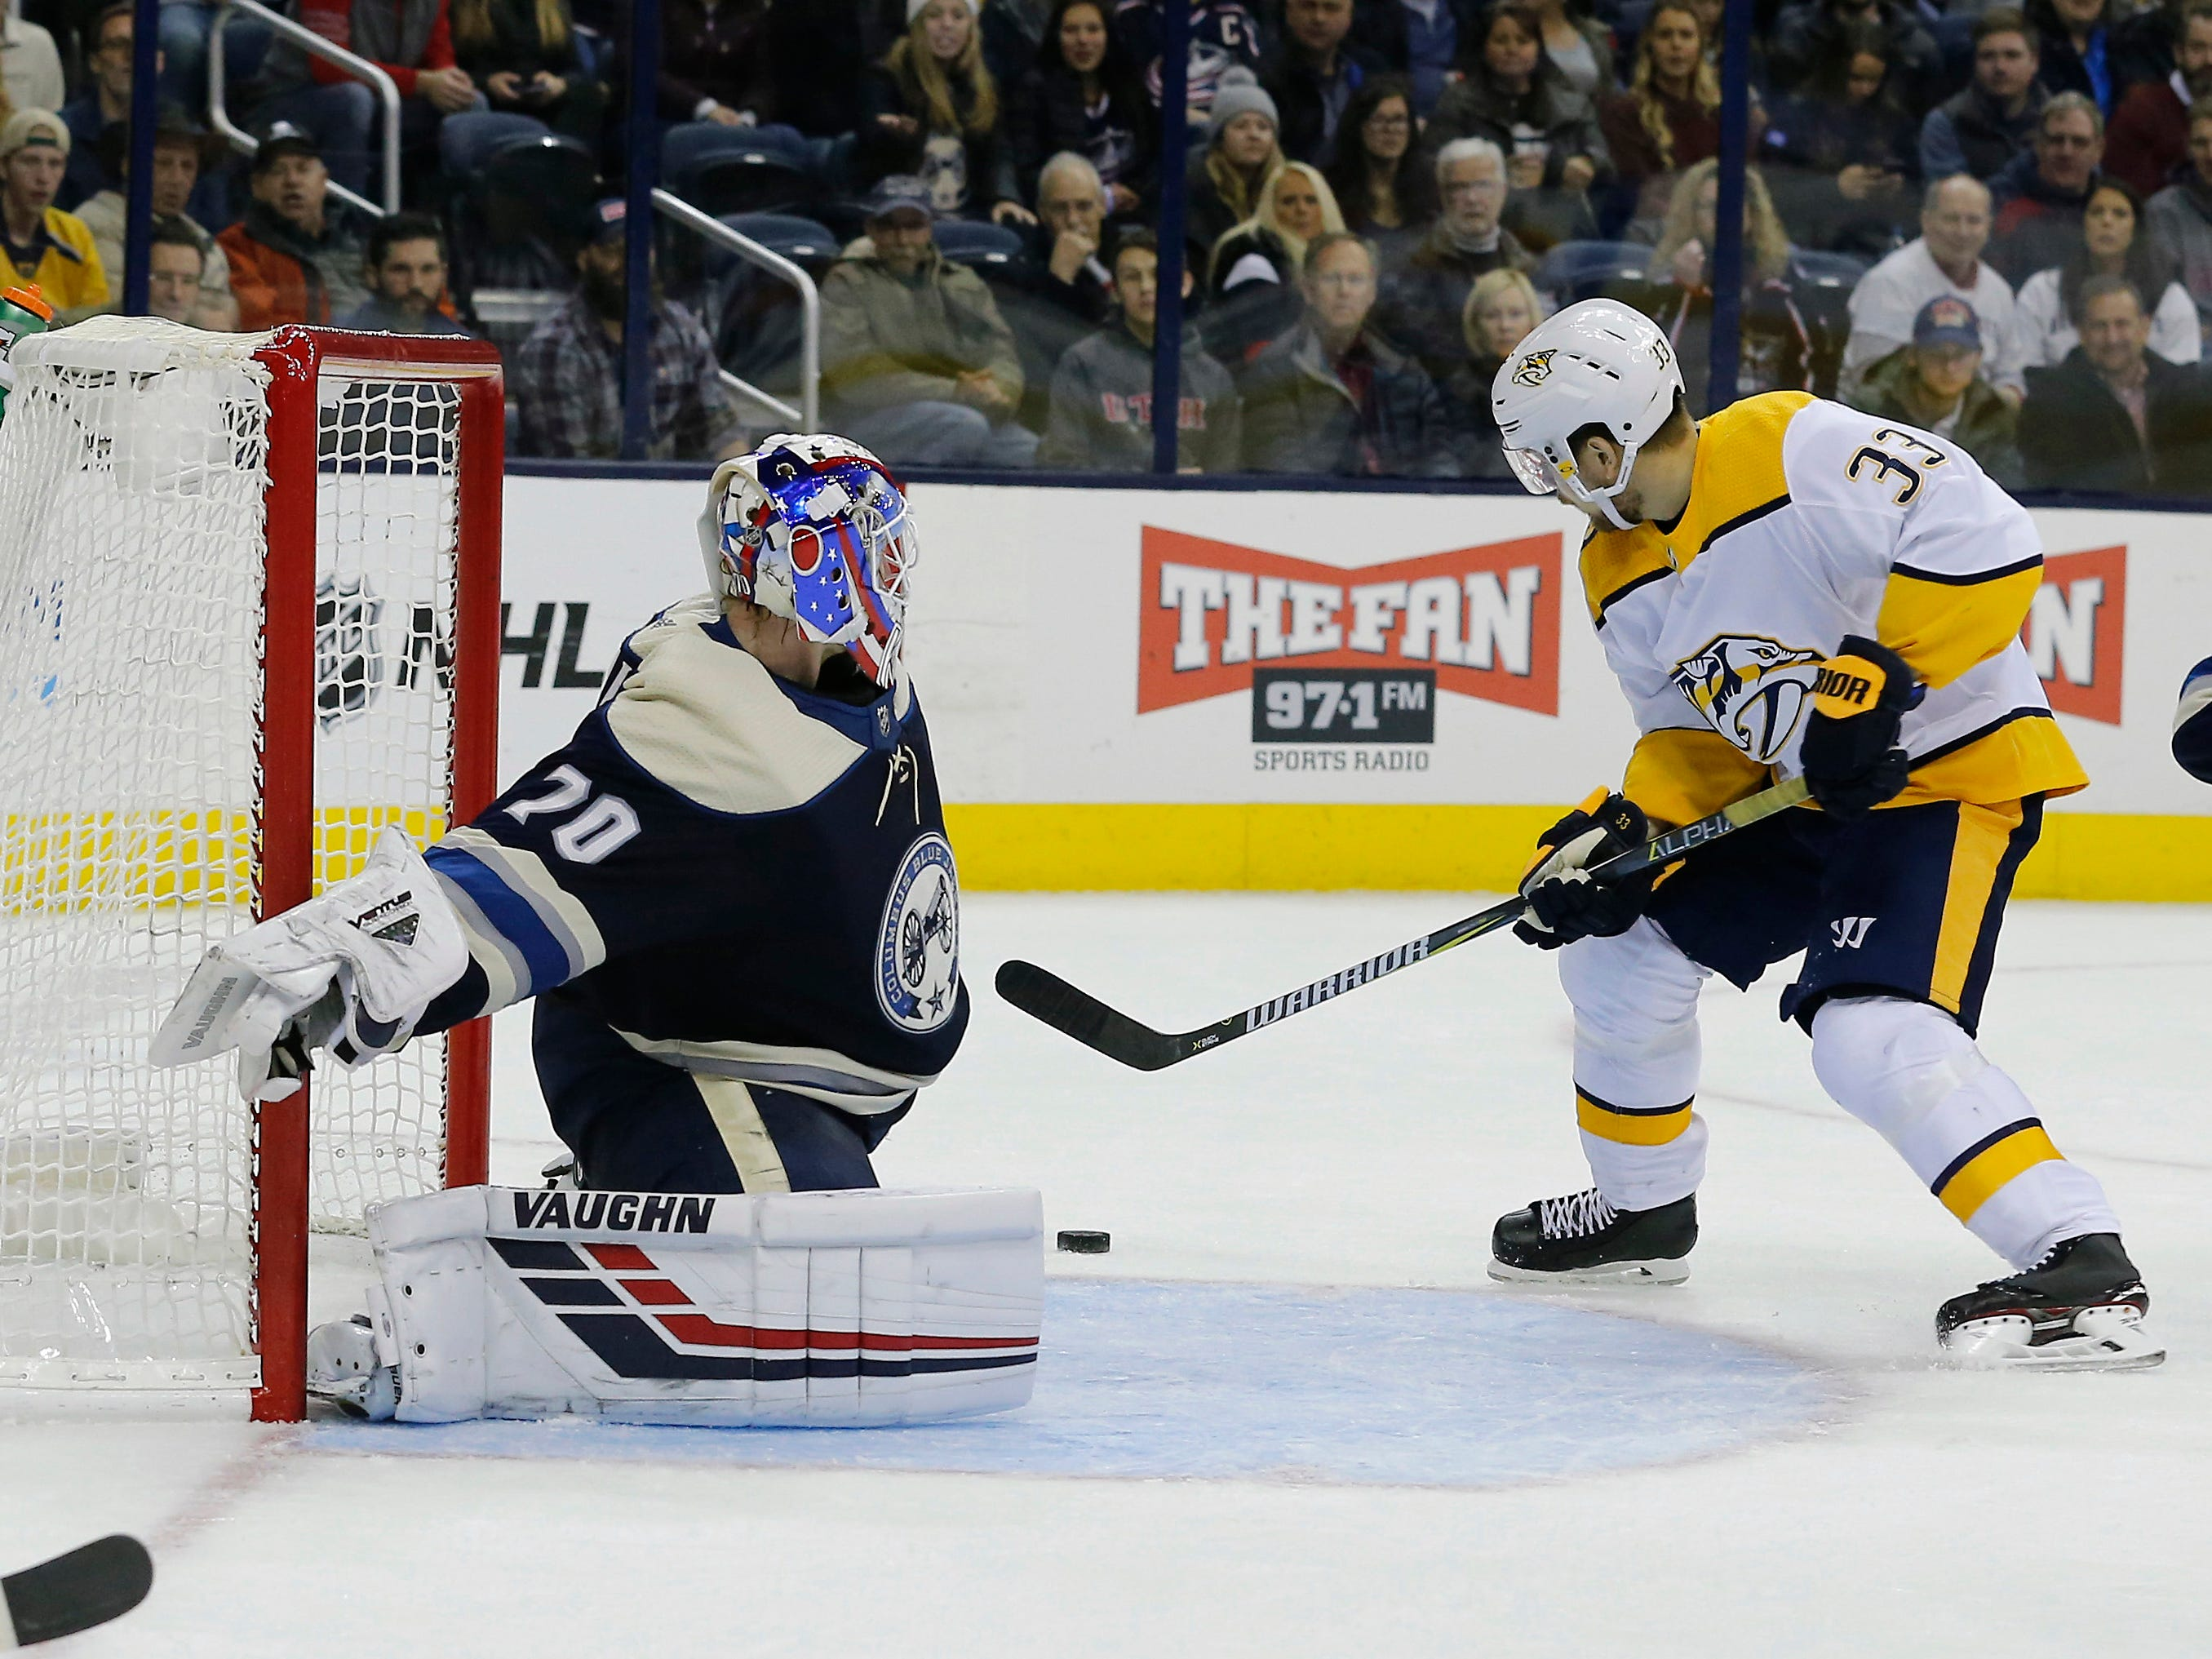 Jan 10, 2019: Blue Jackets 4, Predators 3 (OT) -- Nashville Predators right wing Viktor Arvidsson (33) scores on the rebound of a Columbus Blue Jackets goalie Joonas Korpisalo (70) save during the third period at Nationwide Arena.